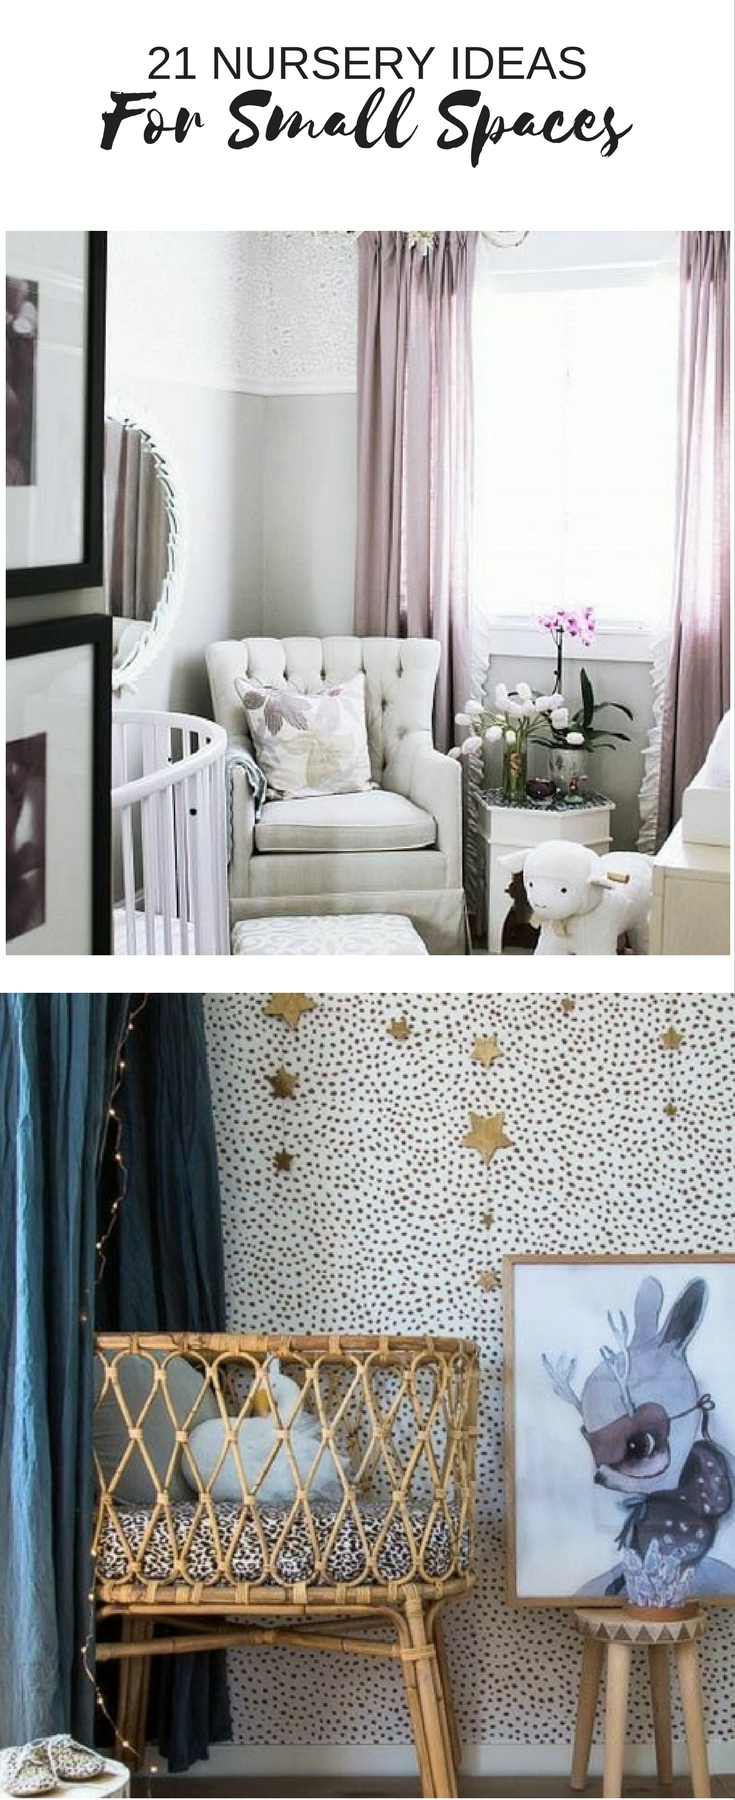 nursery-ideas-for-small-spaces